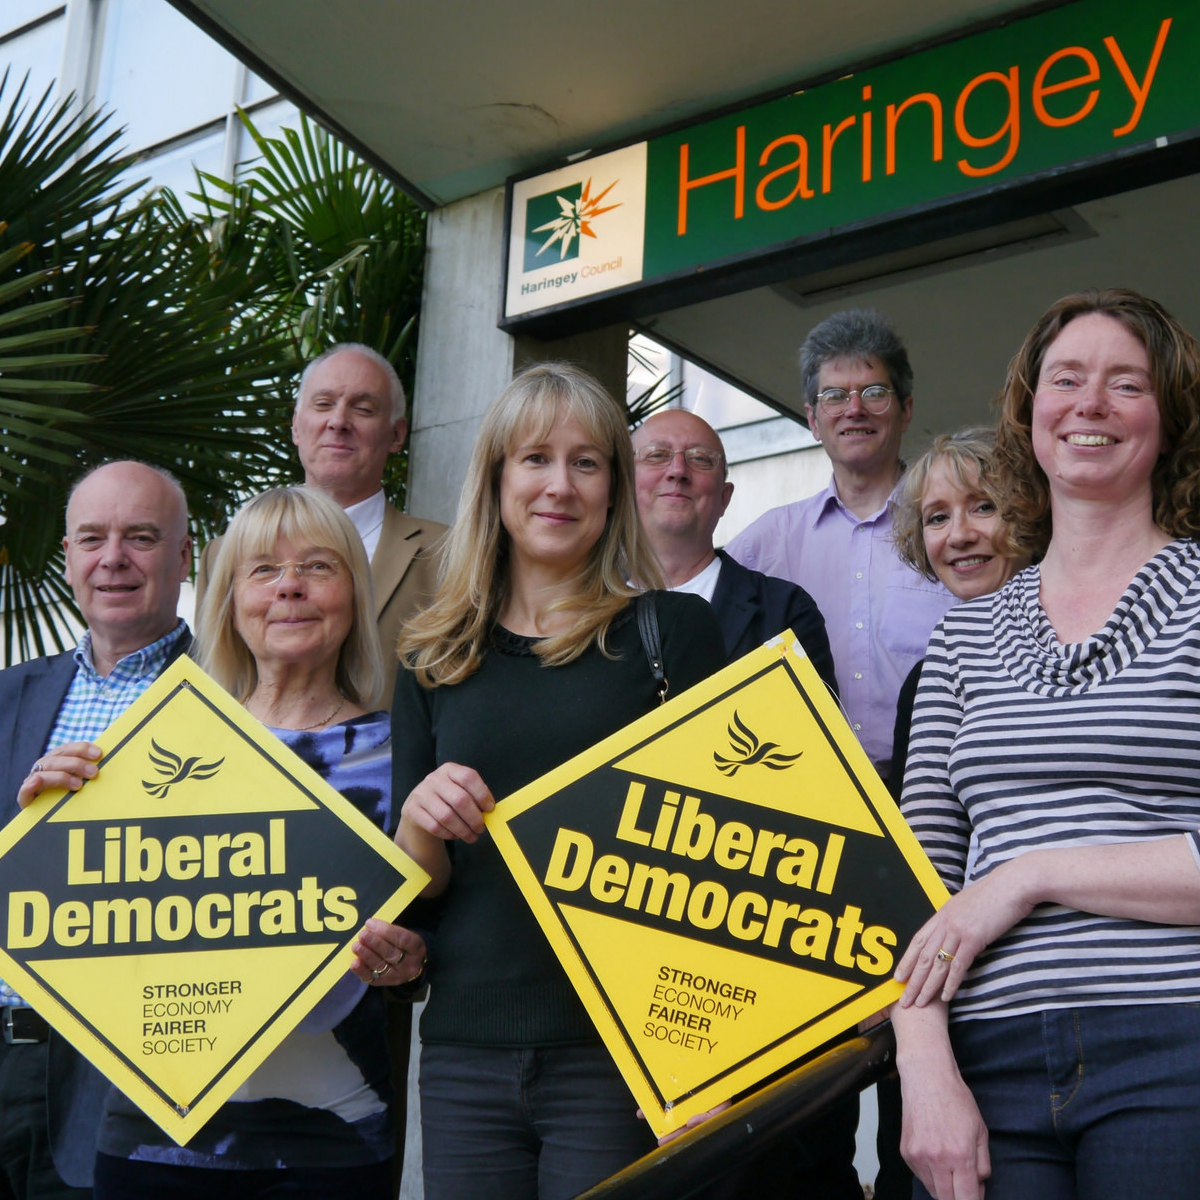 Haringey's Lib Dem Councillors at the Civic Centre in Wood Green